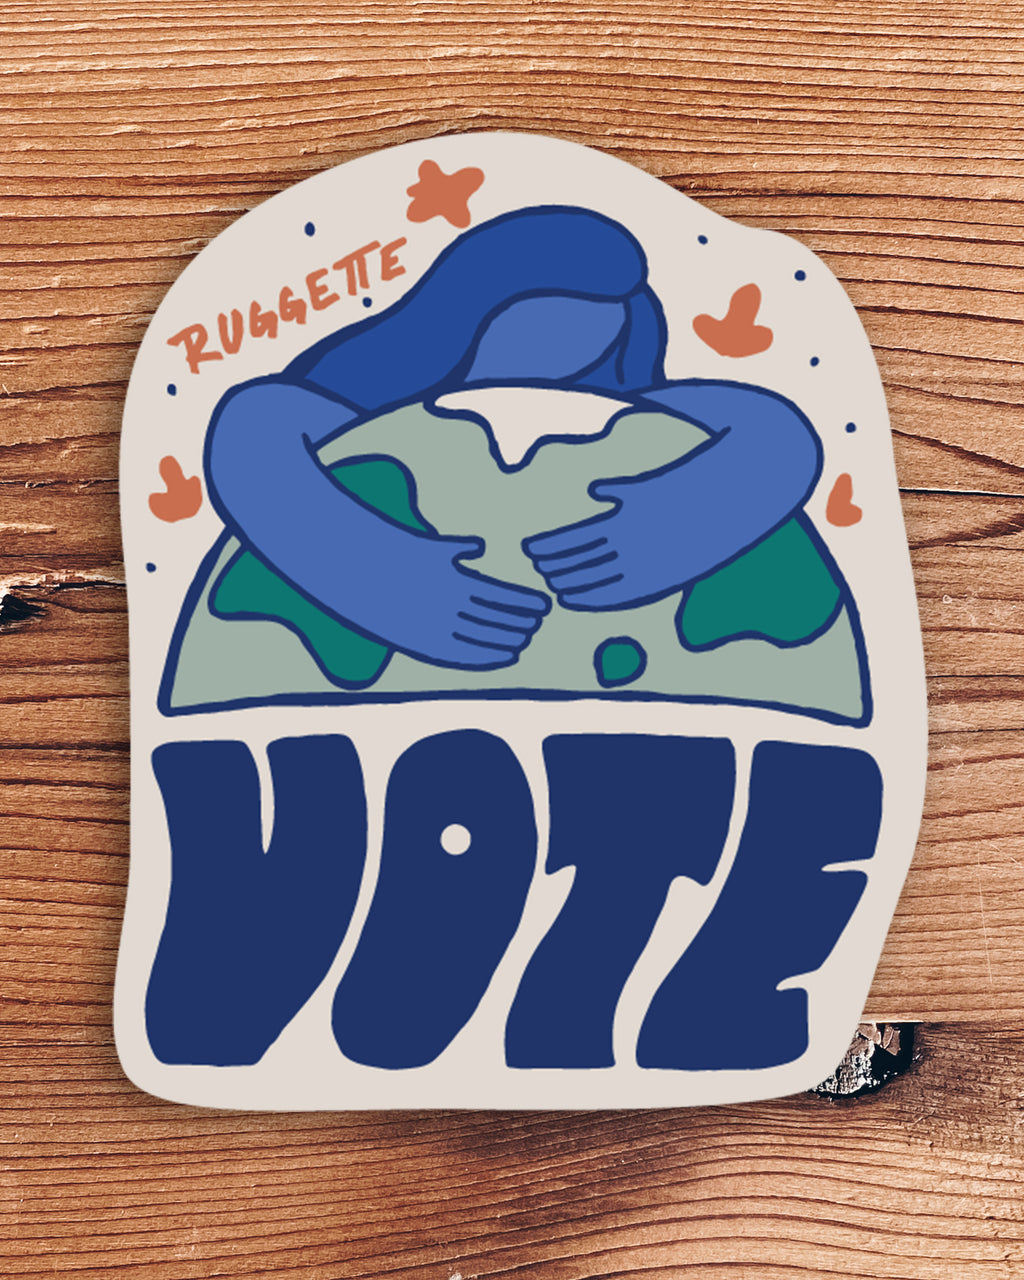 VOTE Stickers by Kika (all profits donated)